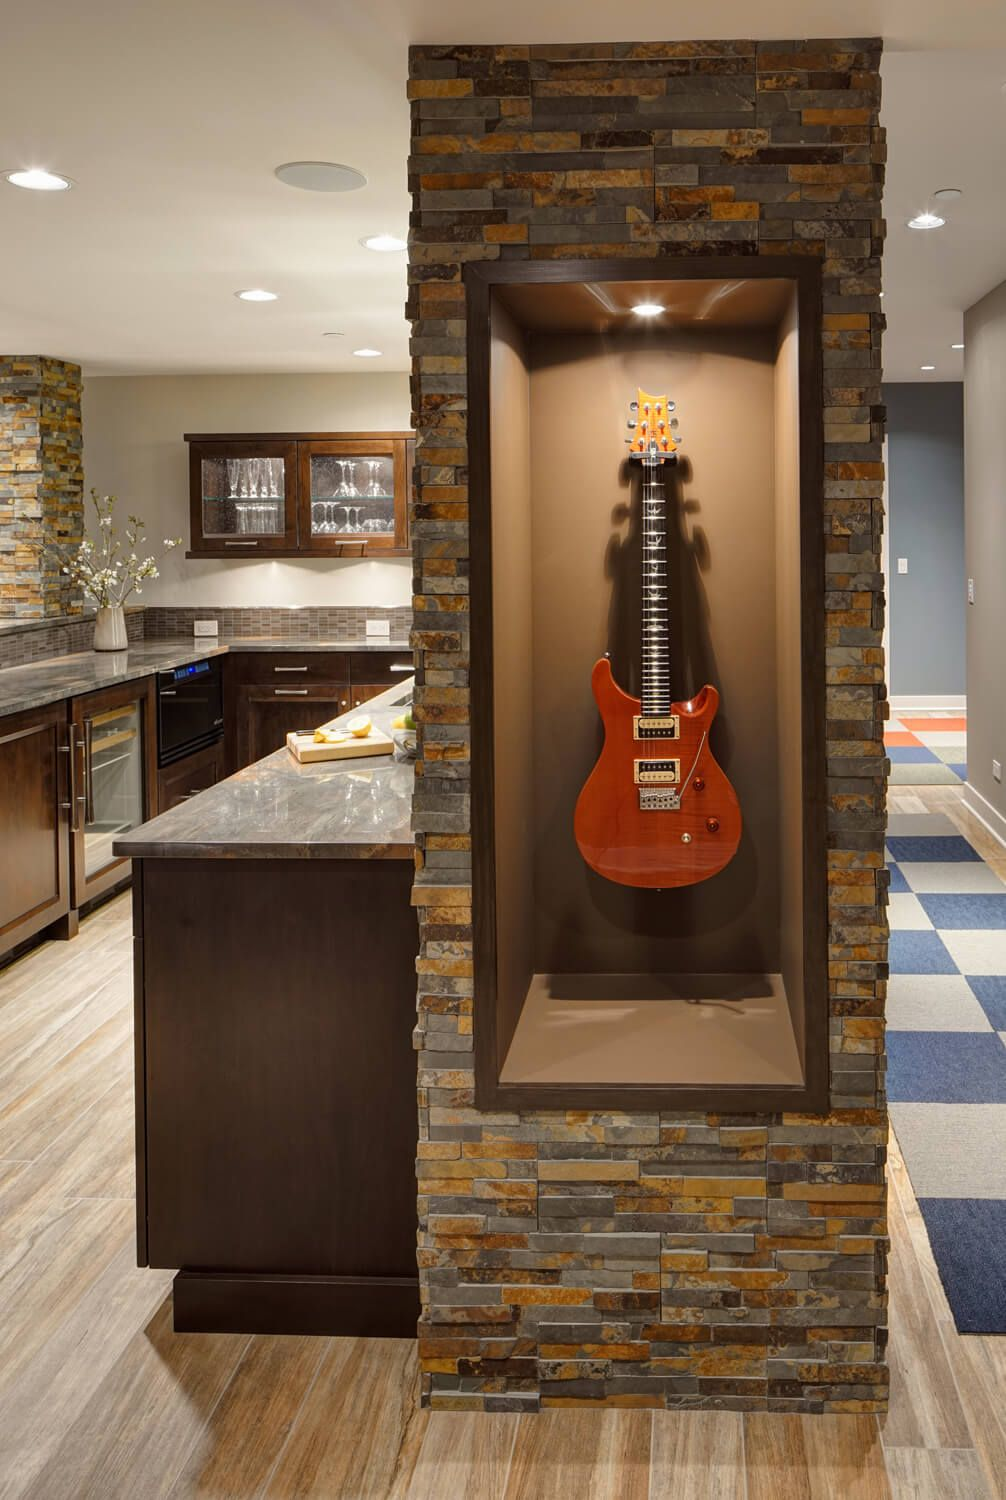 This Bat Rec Room Bar Contains Several Personal Touches Such As In Column Display Case For The Homeowner S Guitar